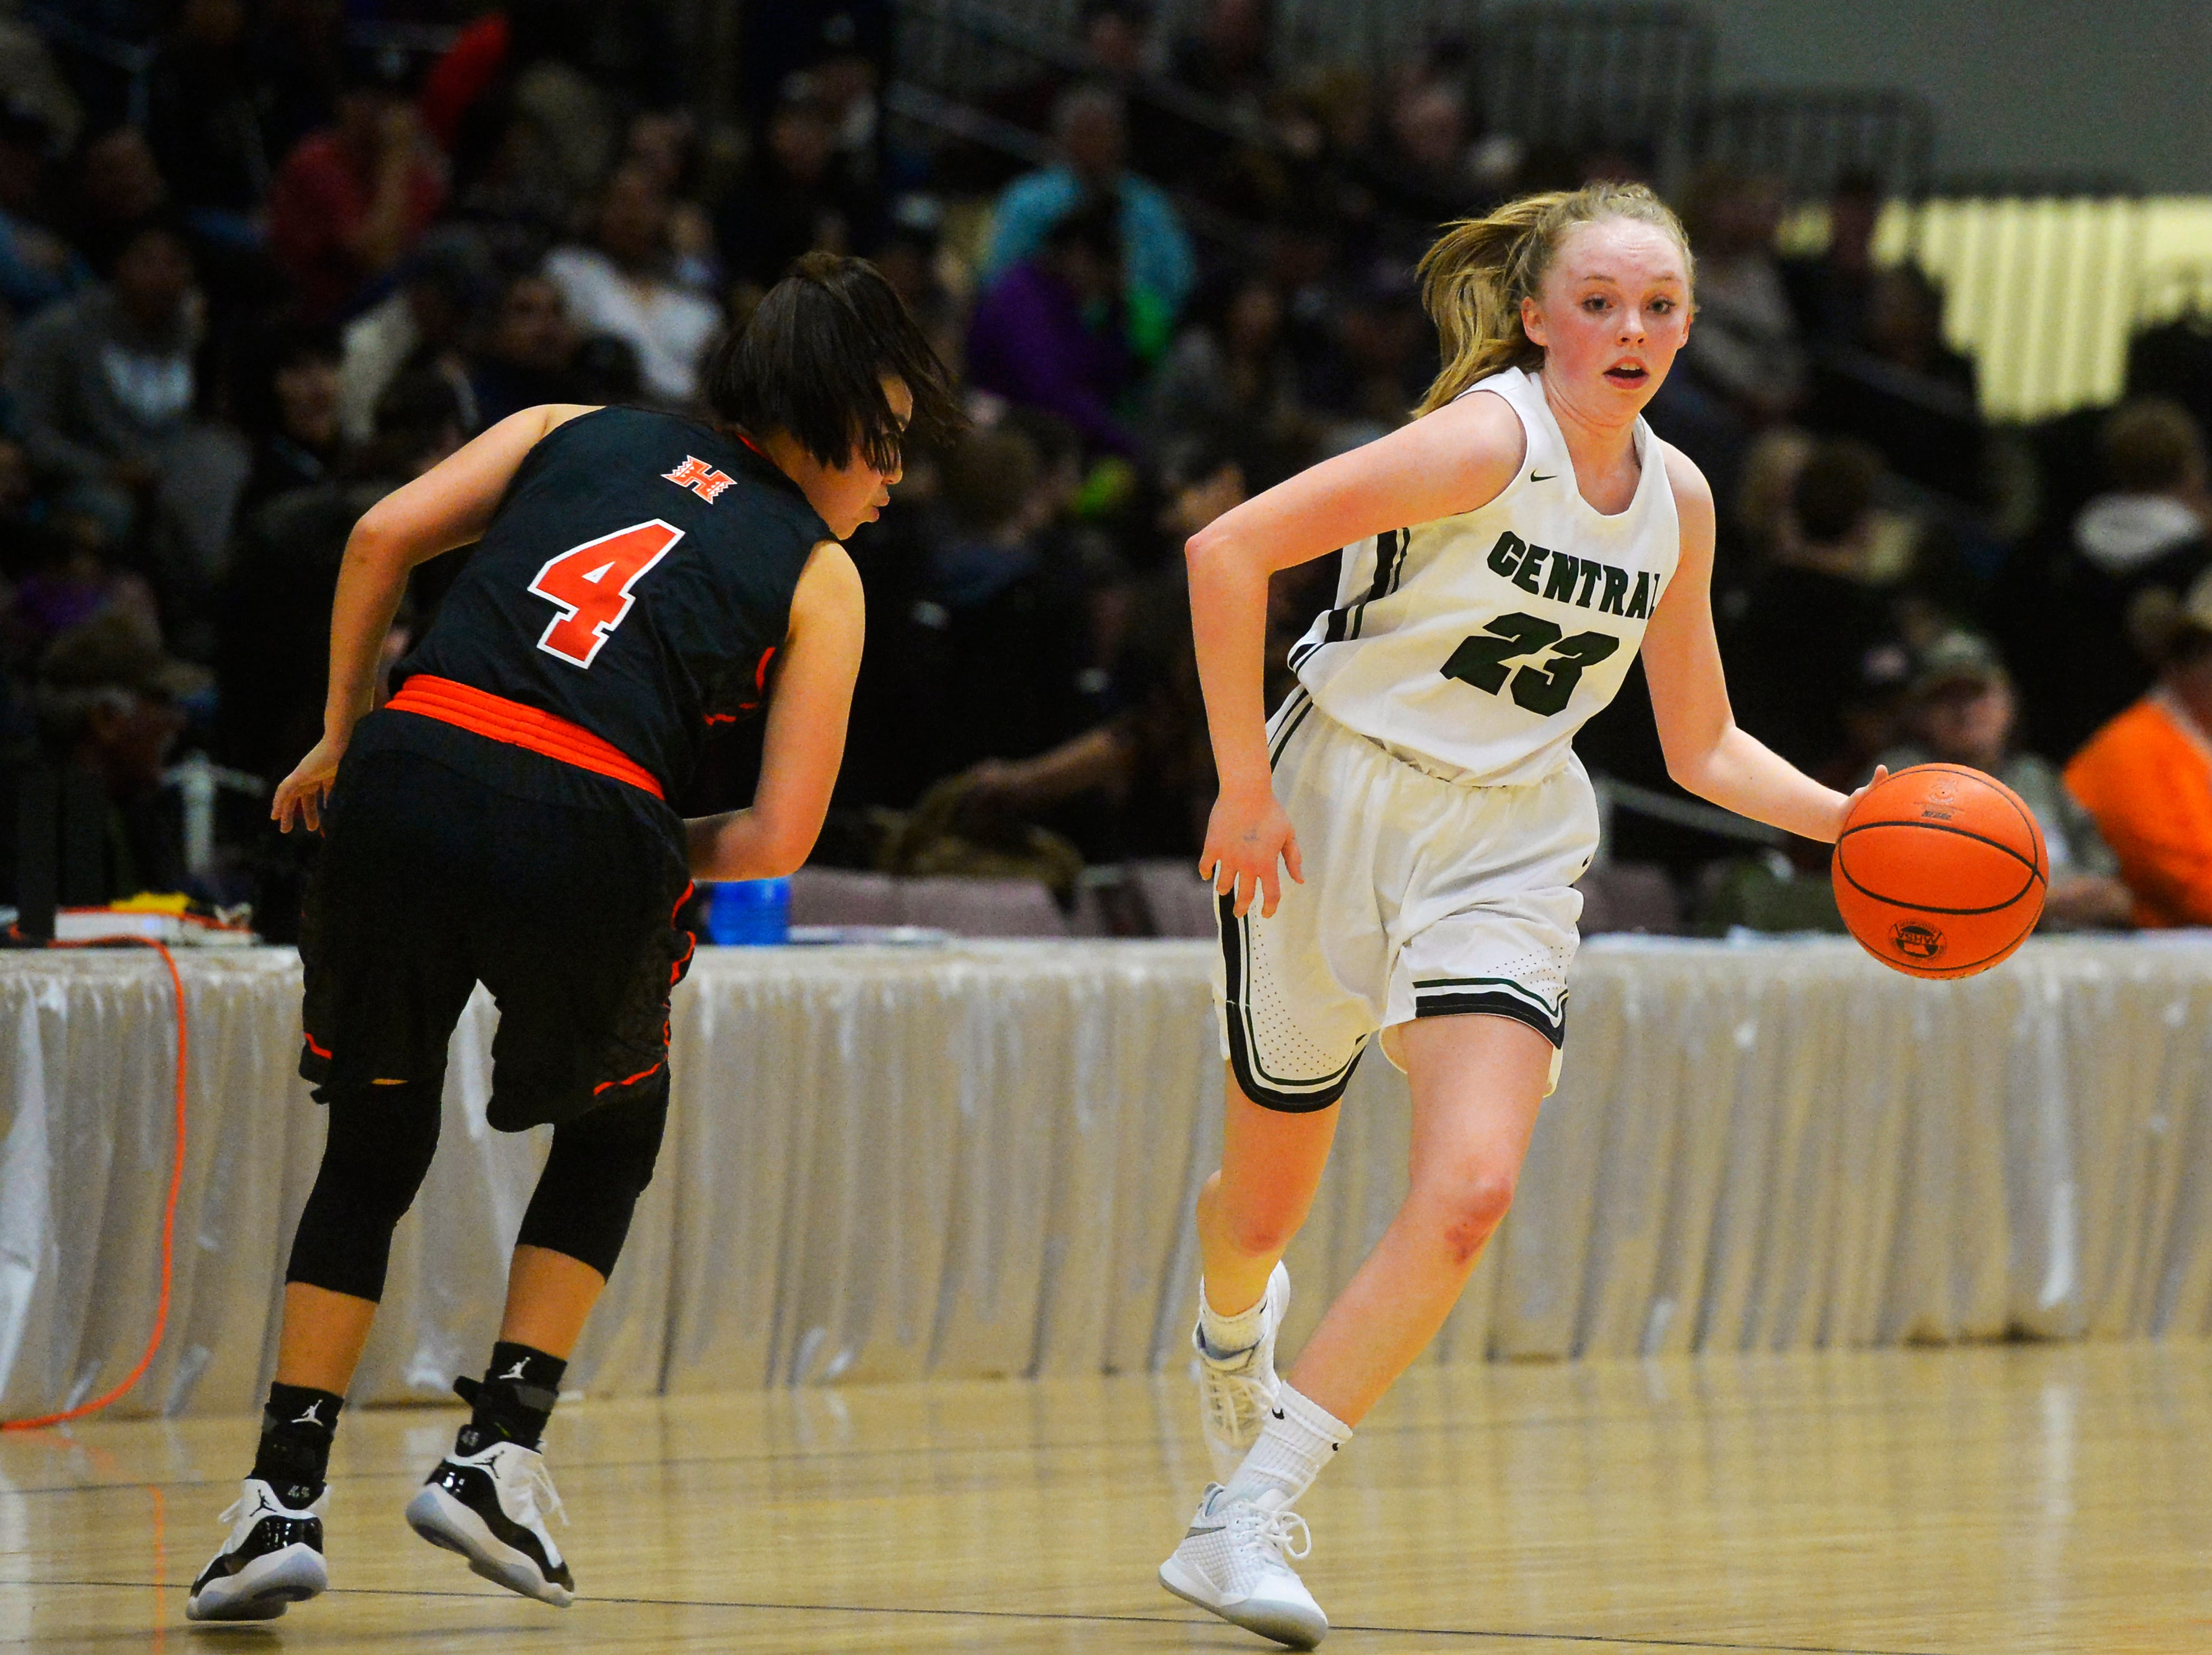 Billings Central's Isabelle Erickson pushes the ball up court in their semifinal game against Hardin during the State Class A Basketball Tournament in the Four Seasons Arena, Friday.